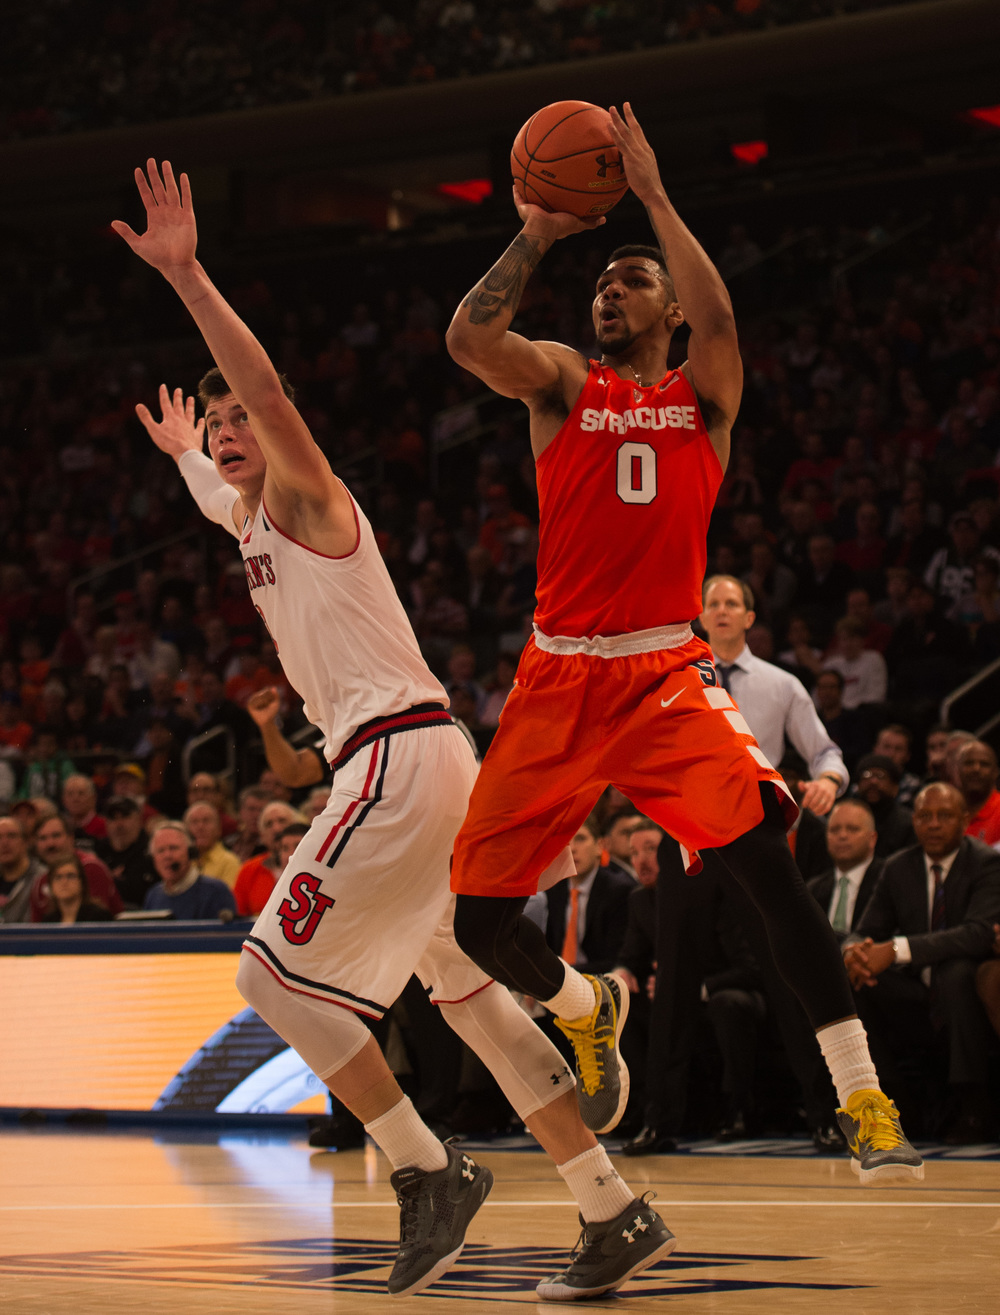 Syracuse vs St. Johns-20.jpg